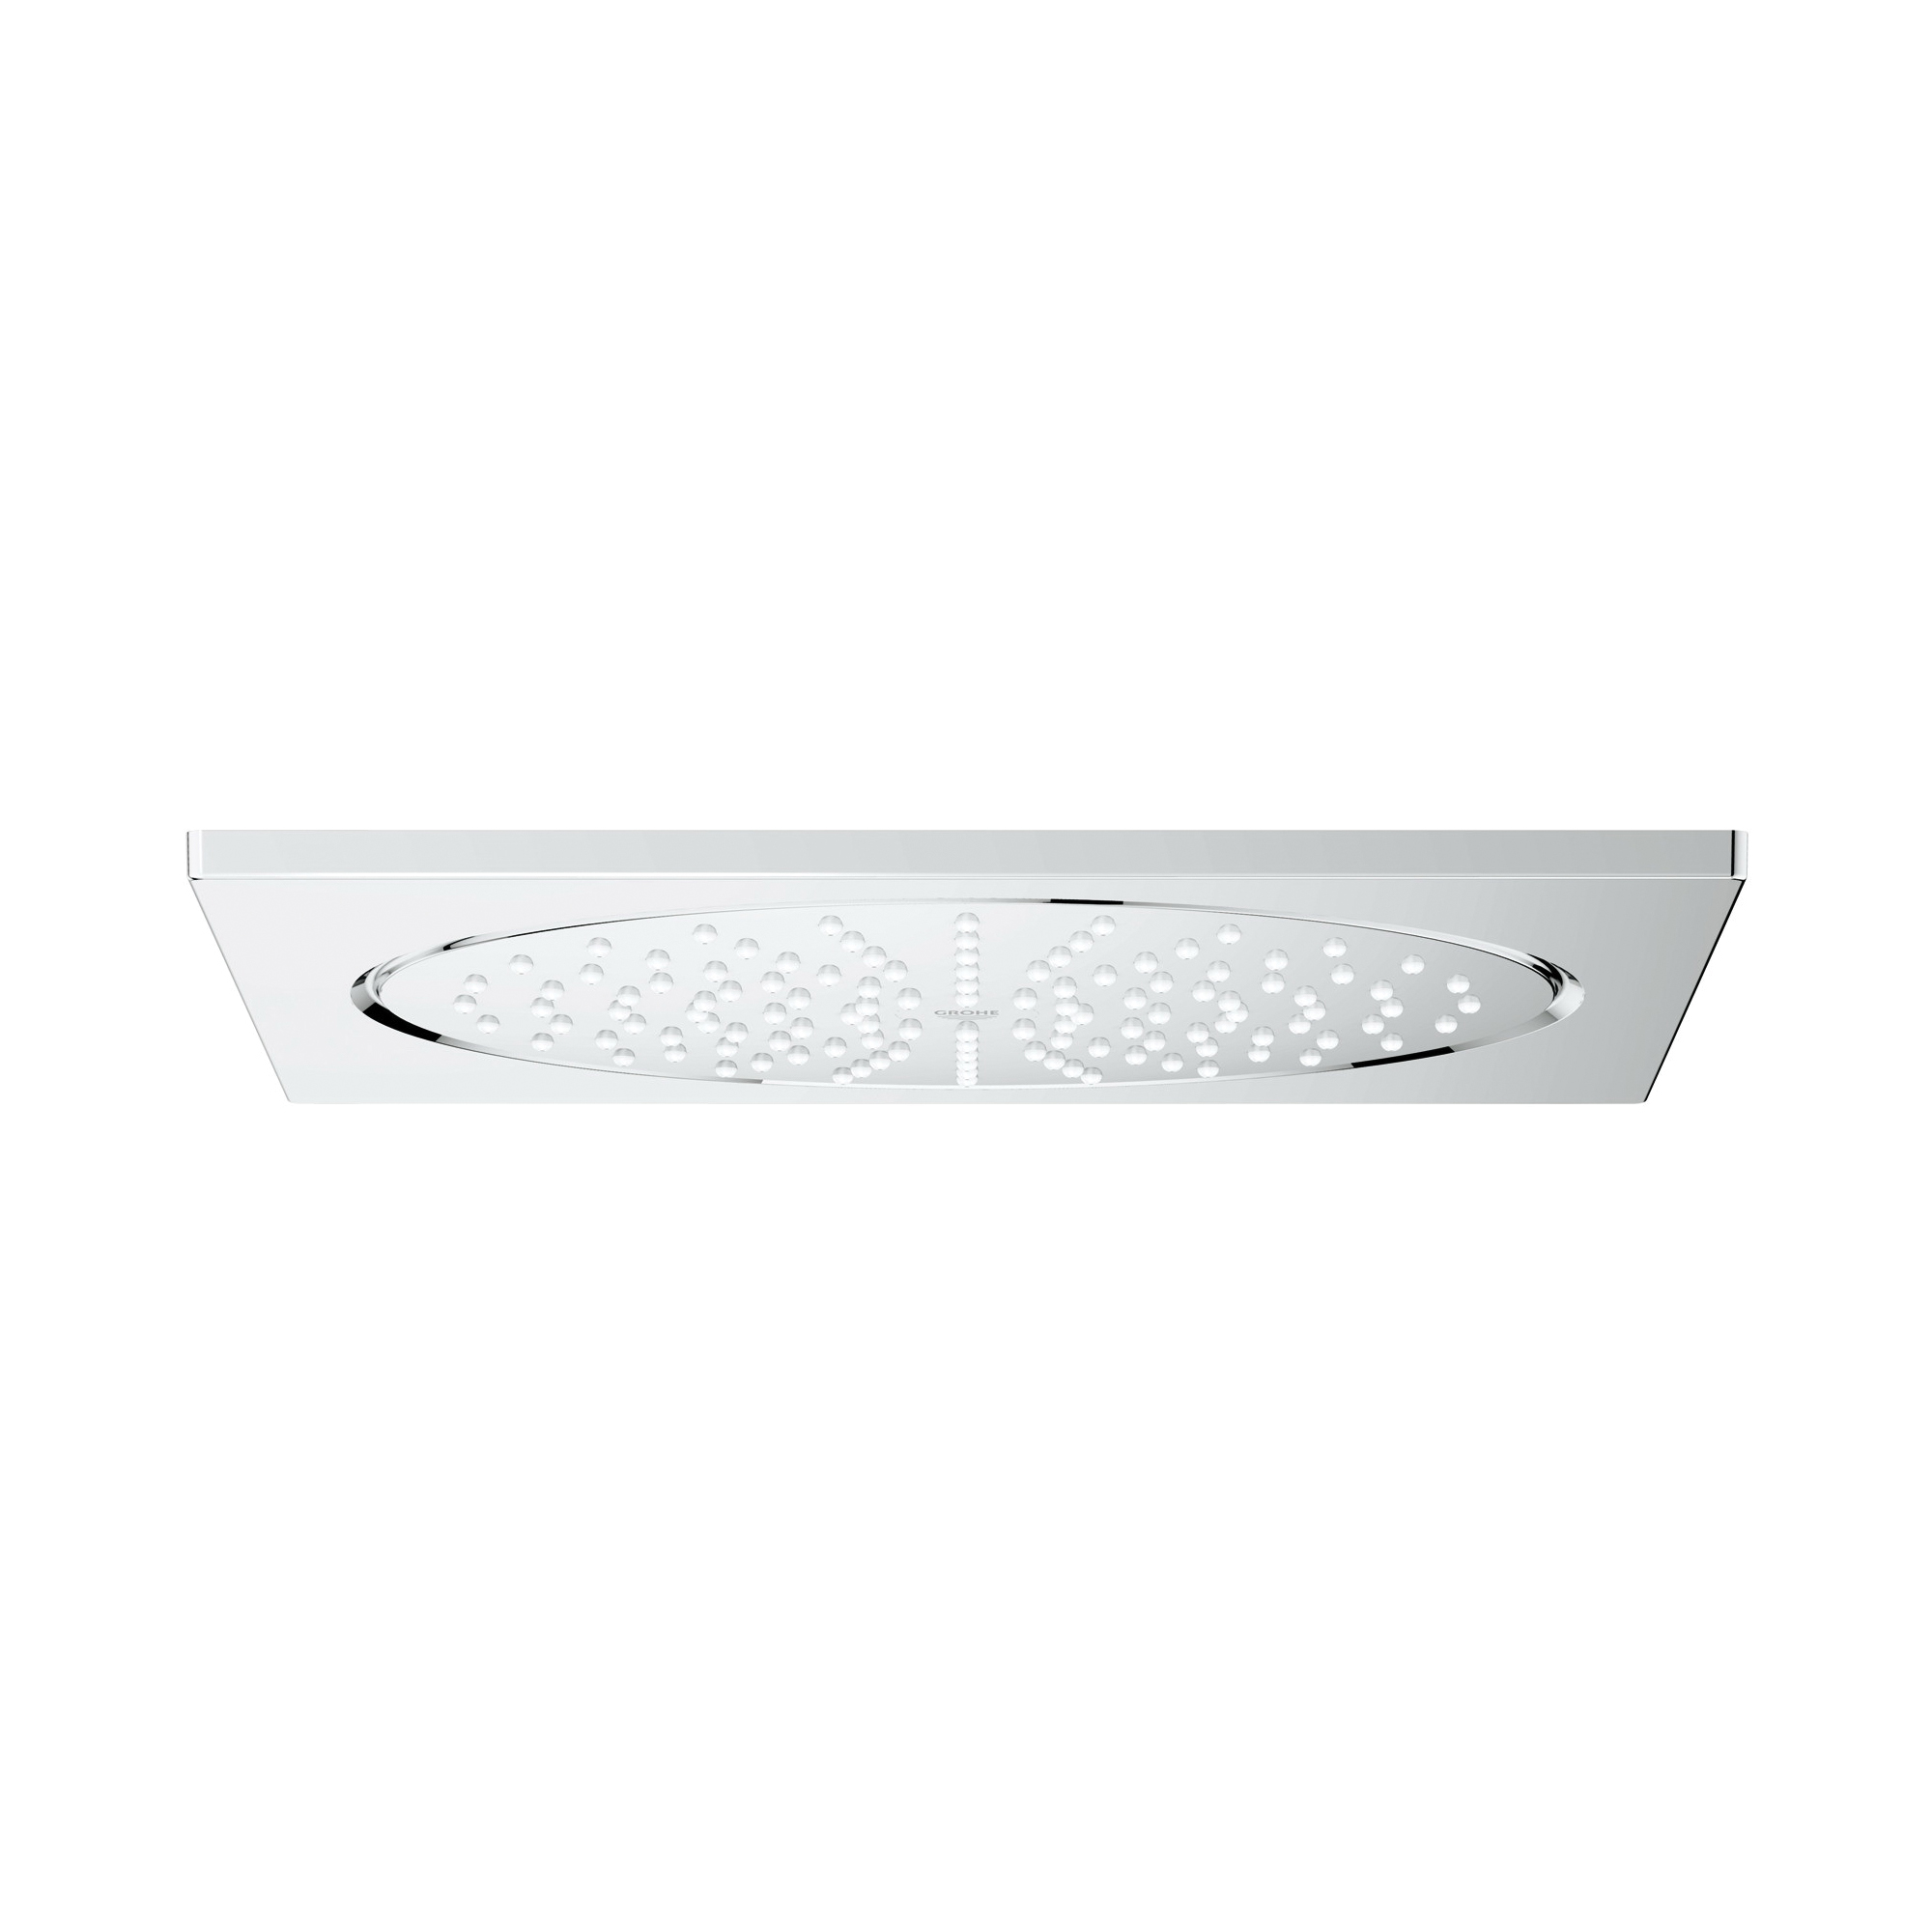 Consolidated Supply Co Grohe 27816000 F Series Rainshower